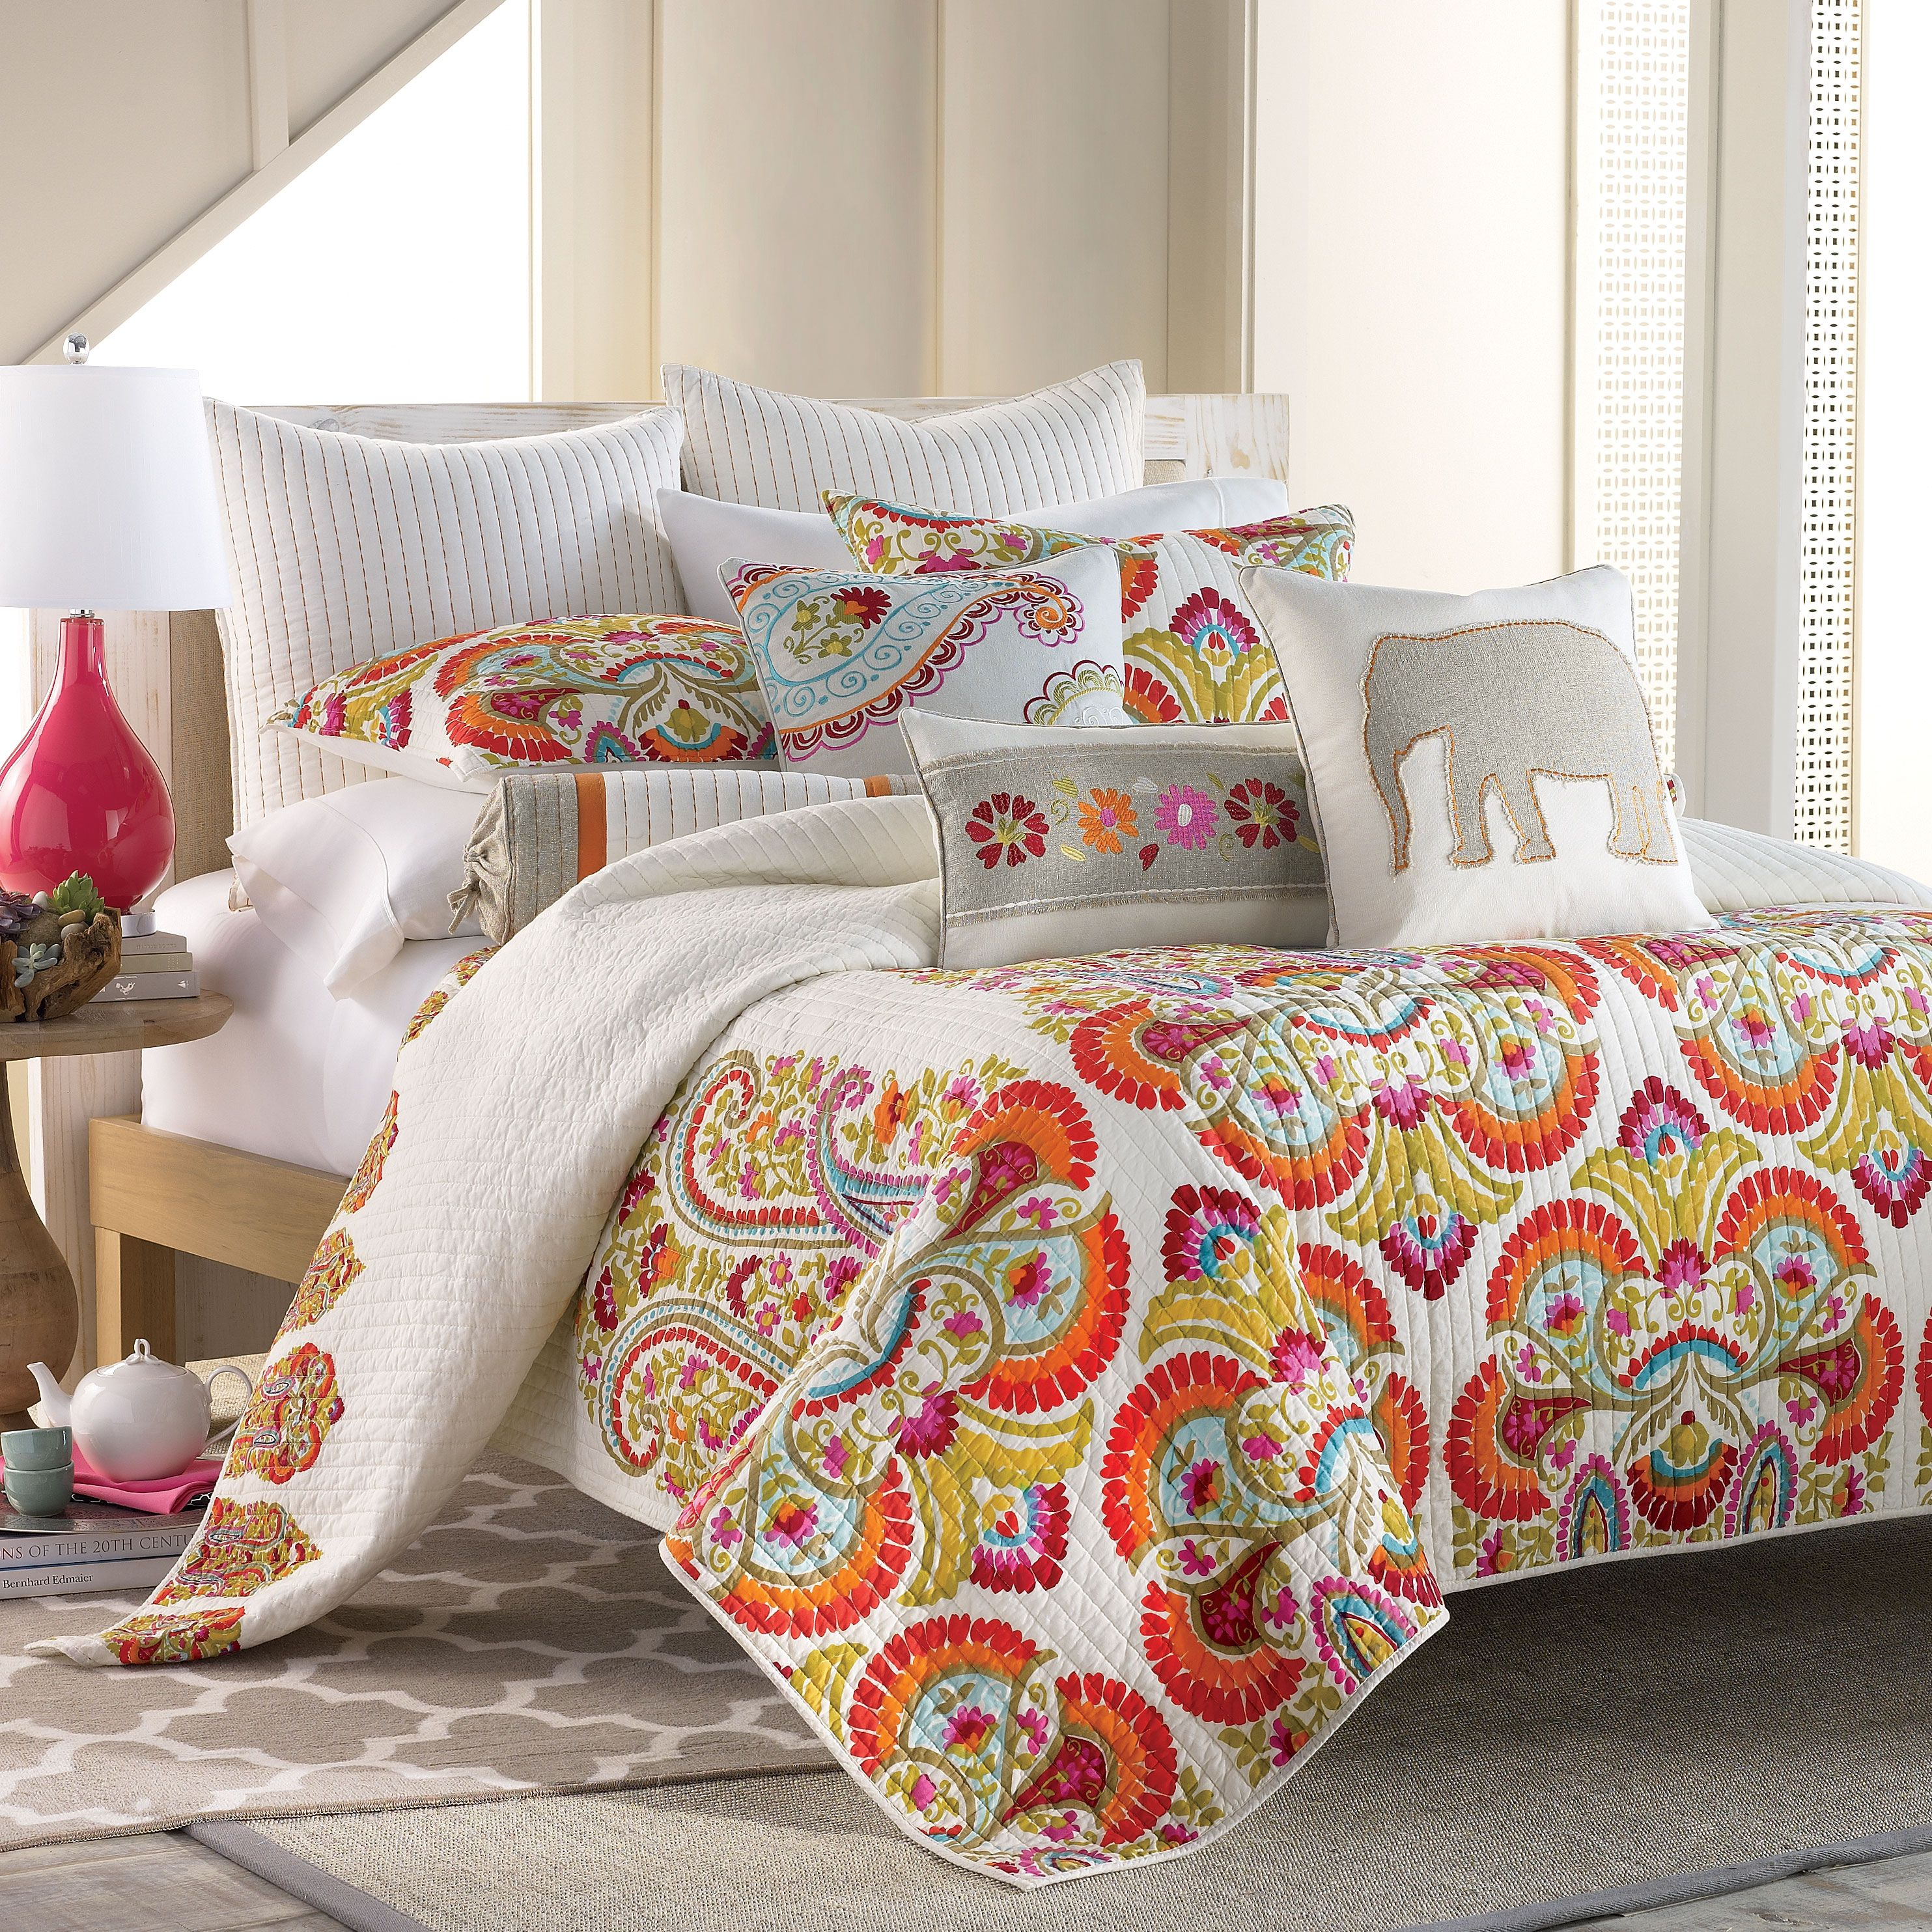 """Bright And Bold Guest Bedroom: """"Bright, Bold & Beautiful Windsong Quilt"""", Post By"""